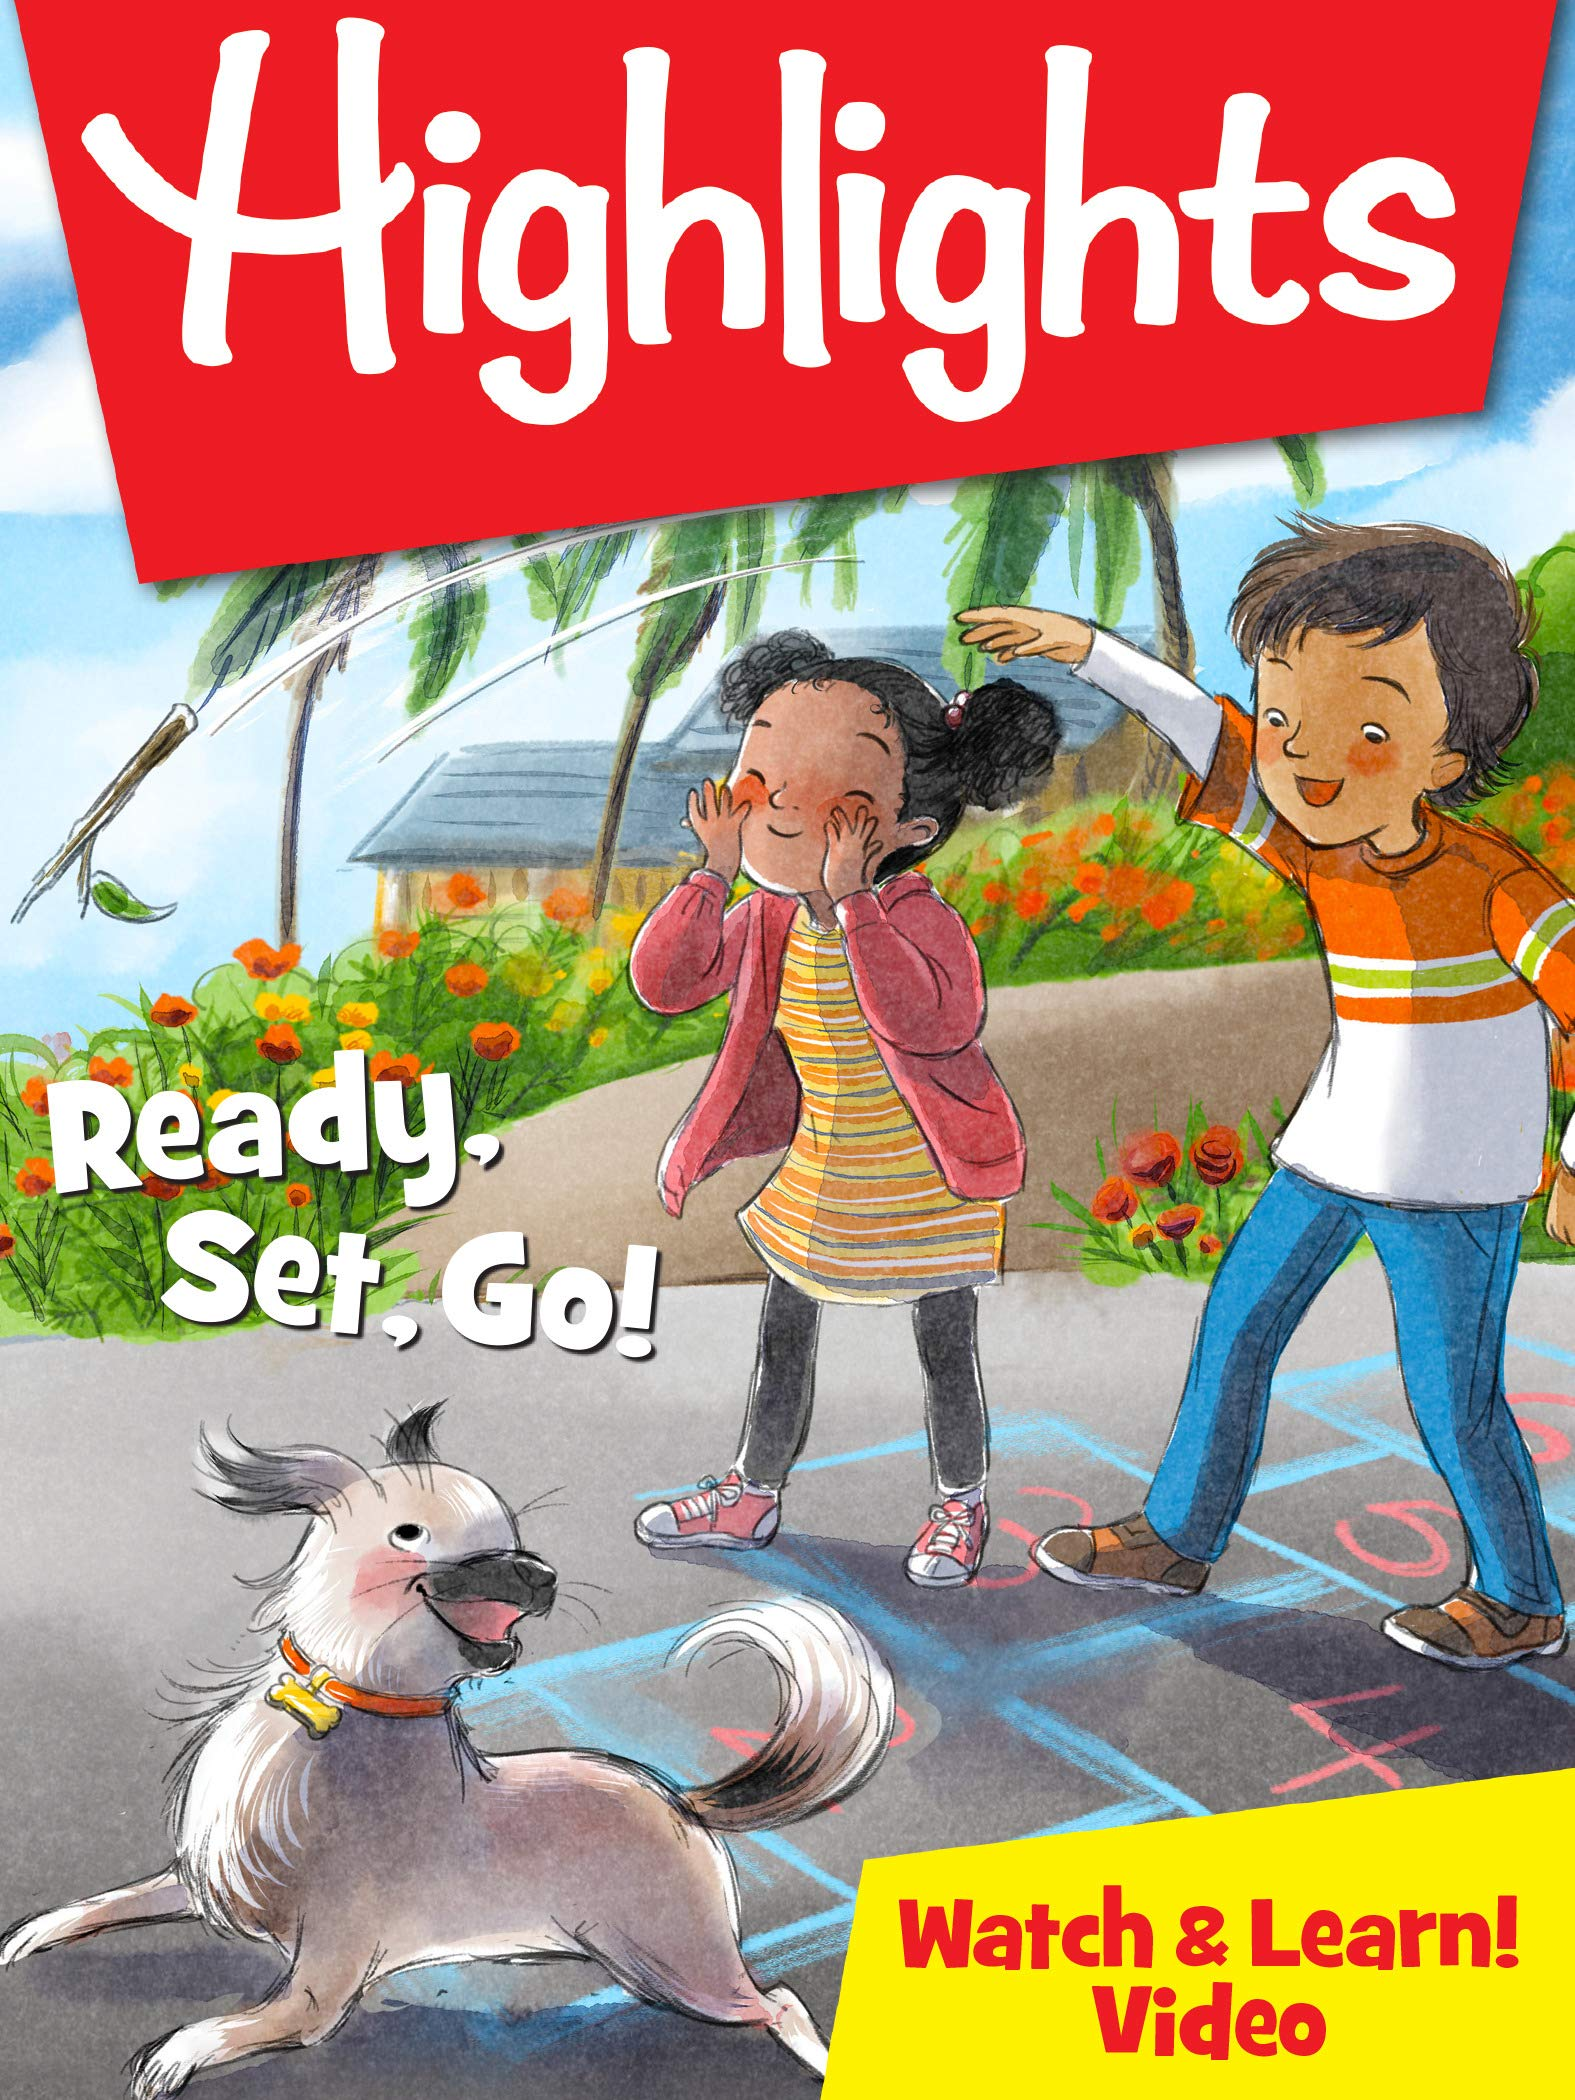 Highlights - Ready, Set, Go! on Amazon Prime Video UK